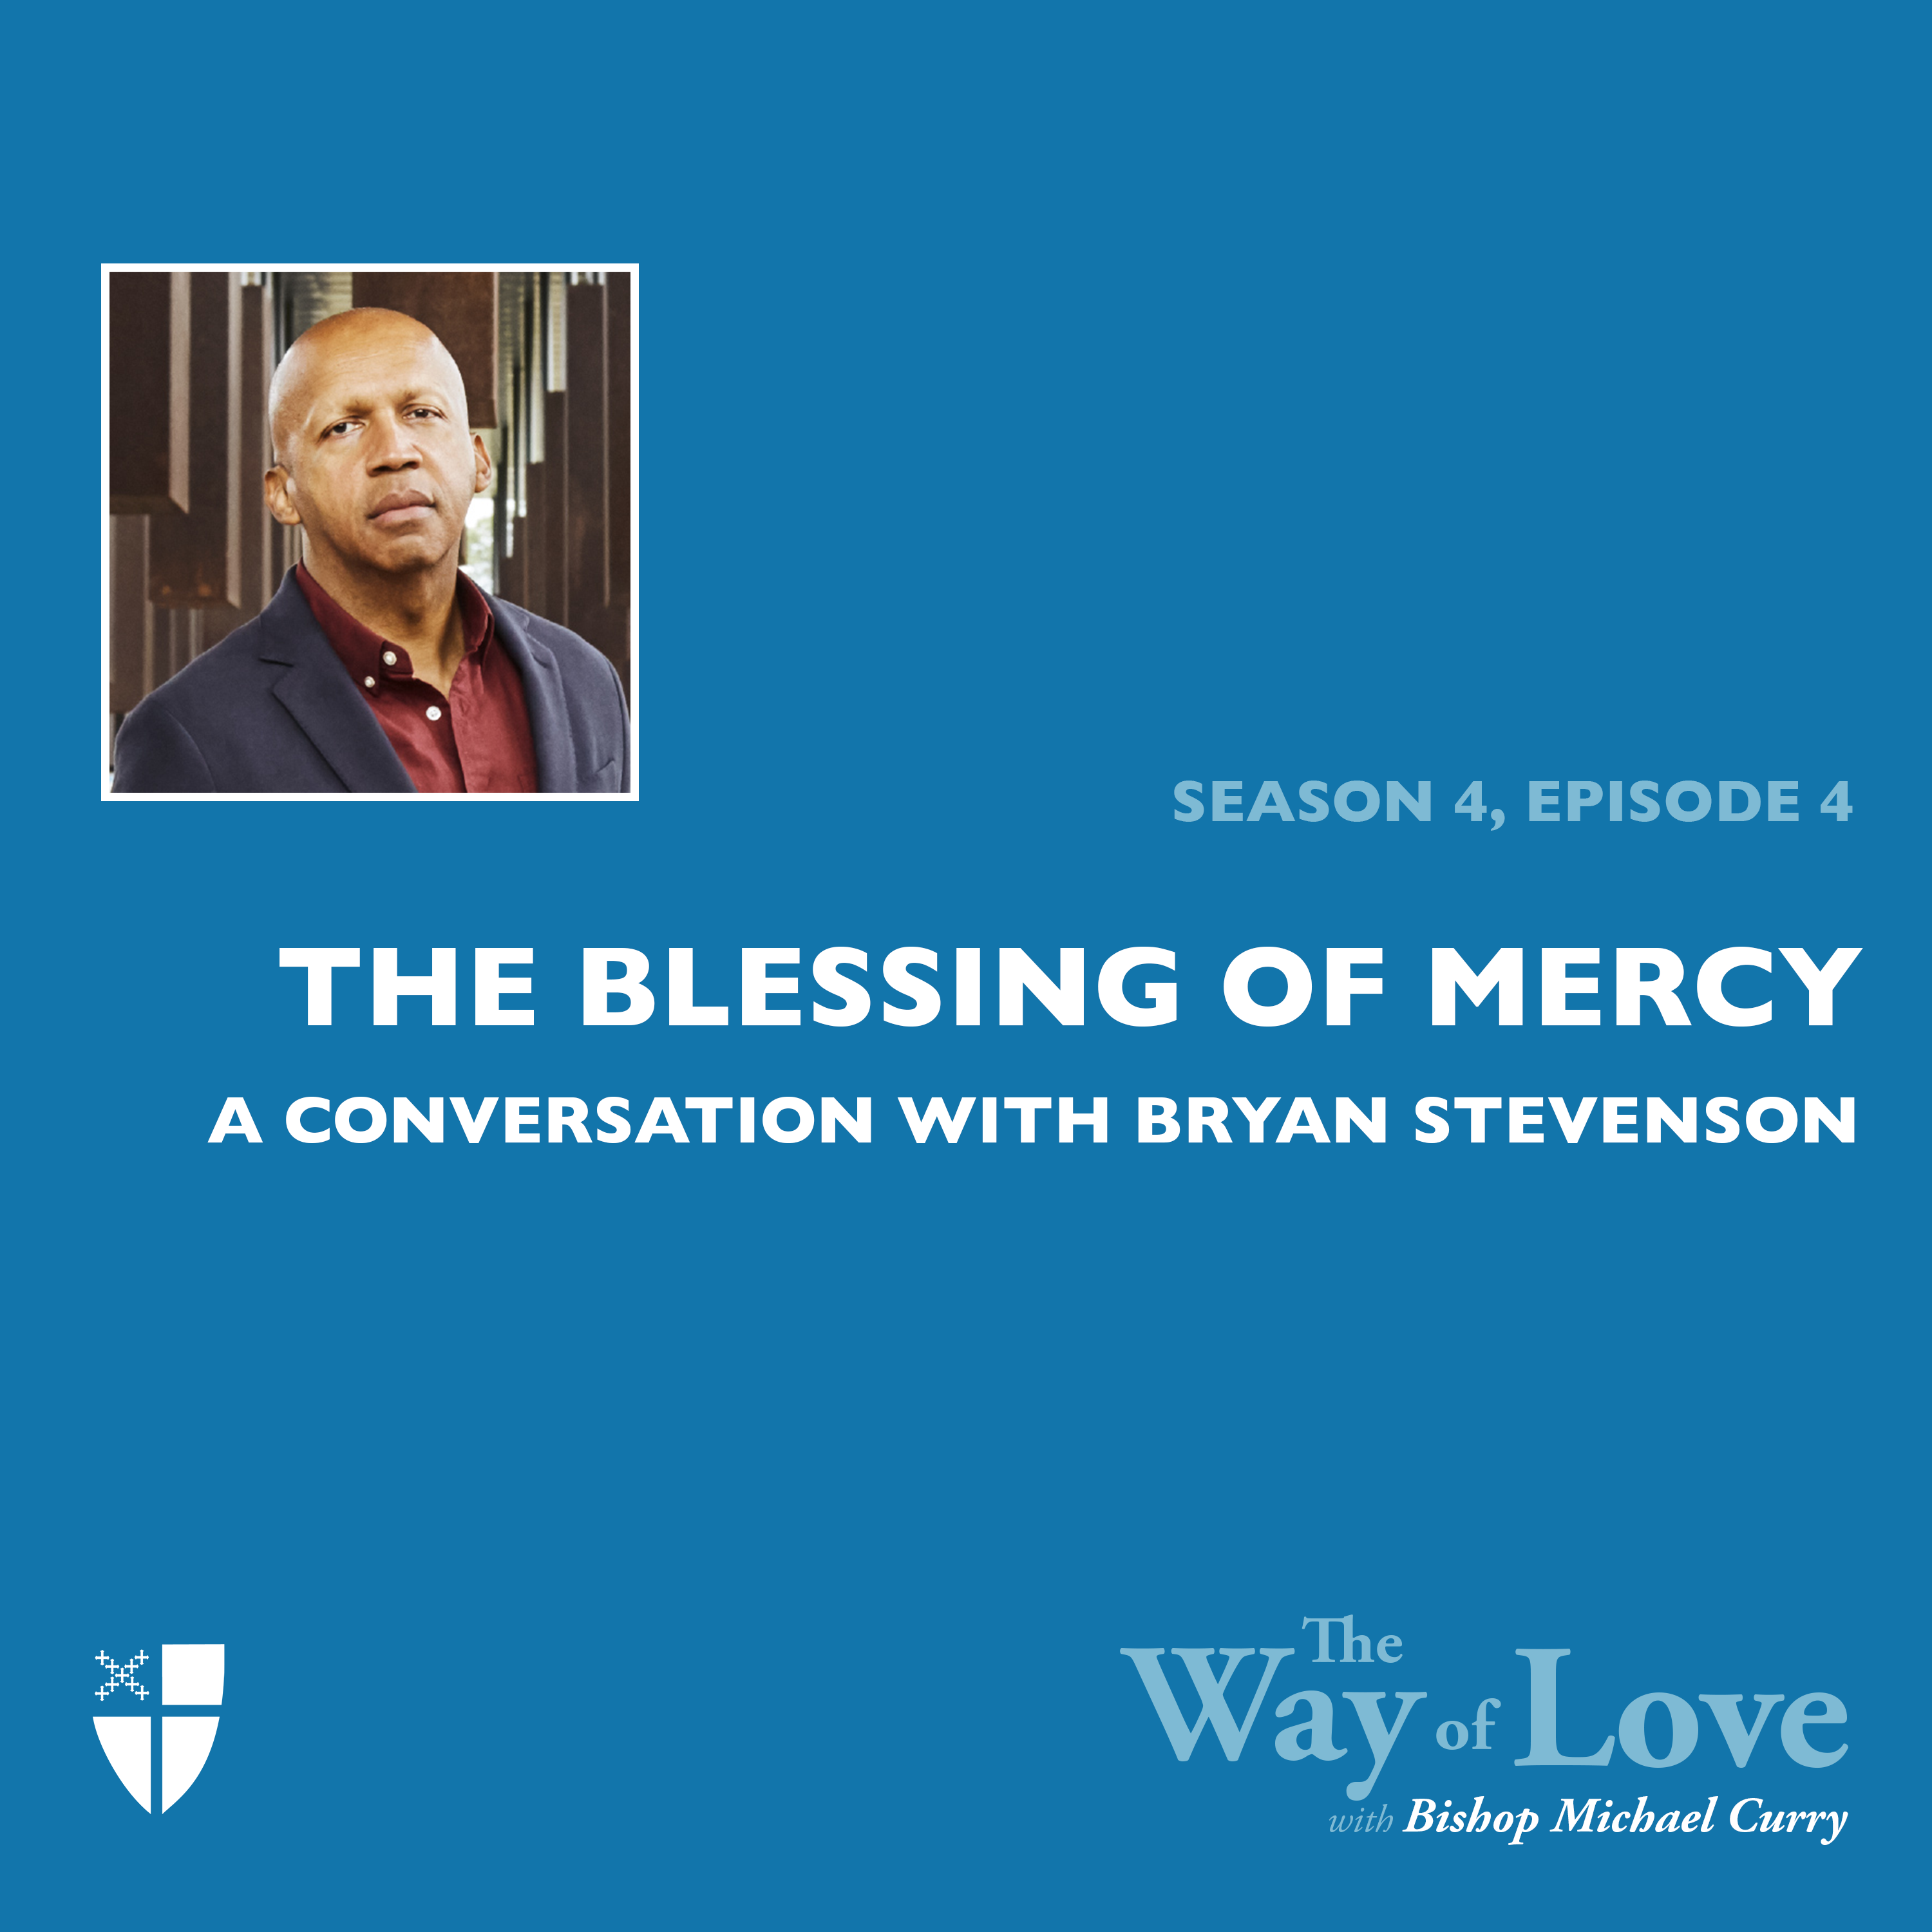 The Blessing of Mercy with Bryan Stevenson